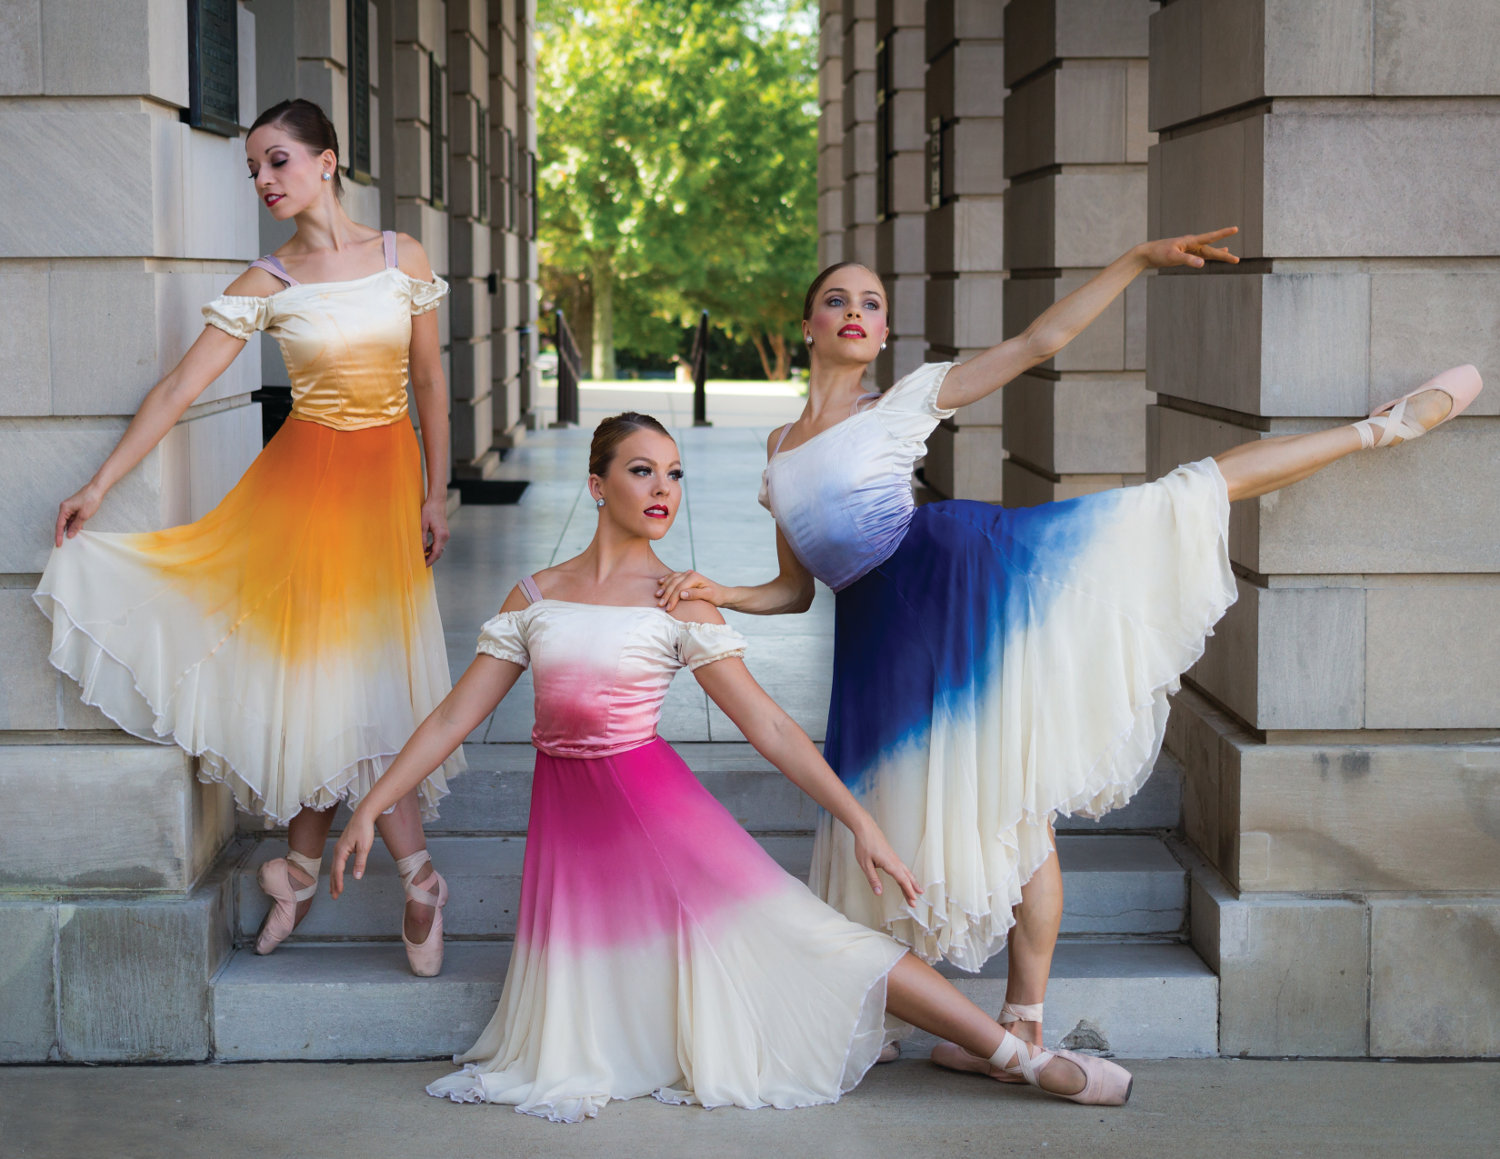 colorful-skirts-dancers.jpg